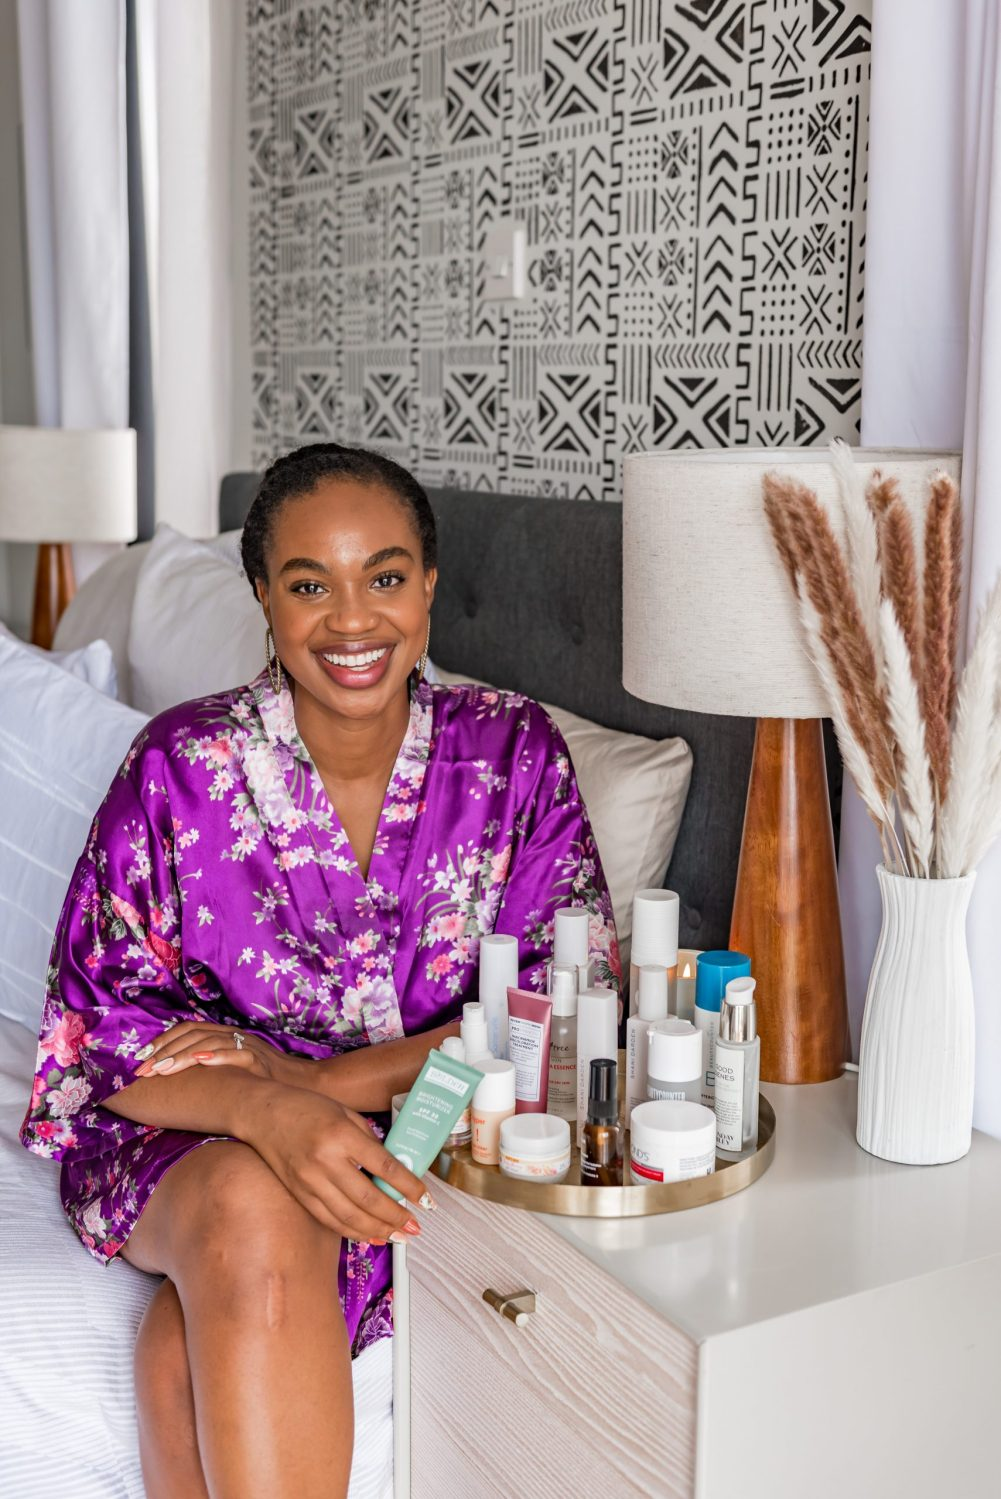 IJeoma.  kola.in purple silk robe sitting on bed with skincare products on tray